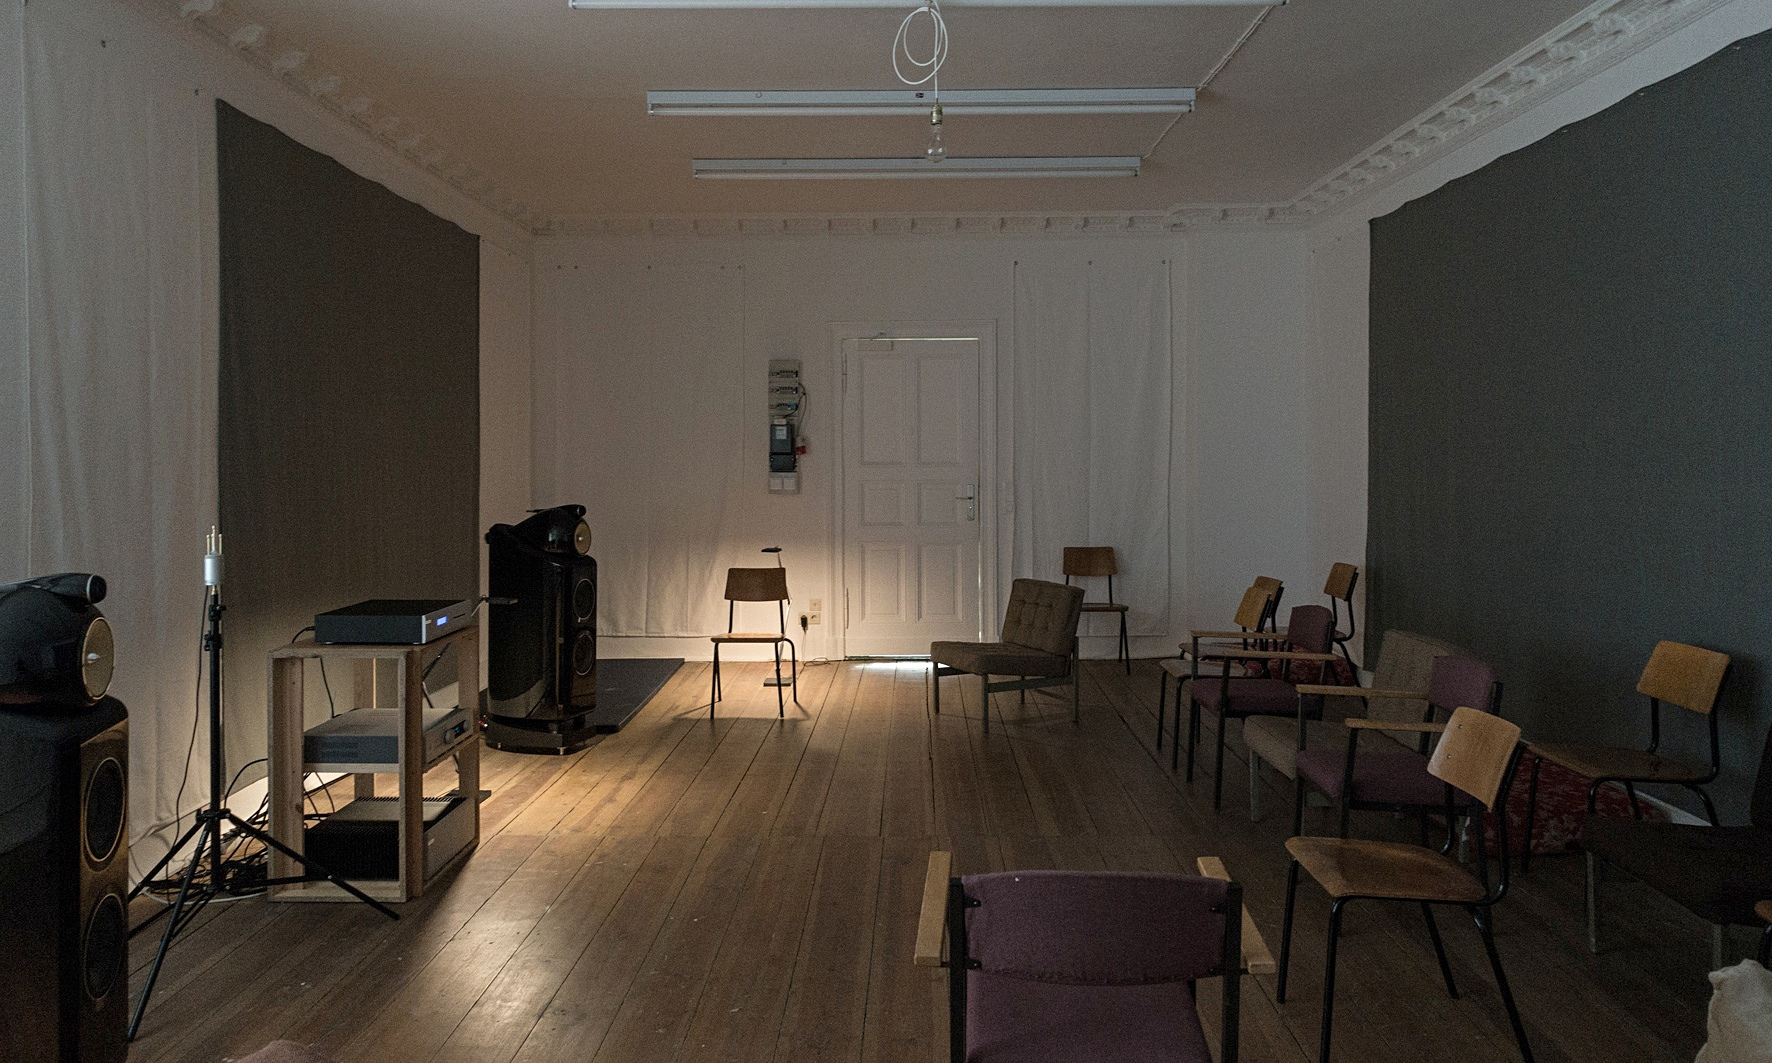 wolfgang tillmans to open music 39 playback room 39 in berlin gallery art and design the guardian. Black Bedroom Furniture Sets. Home Design Ideas